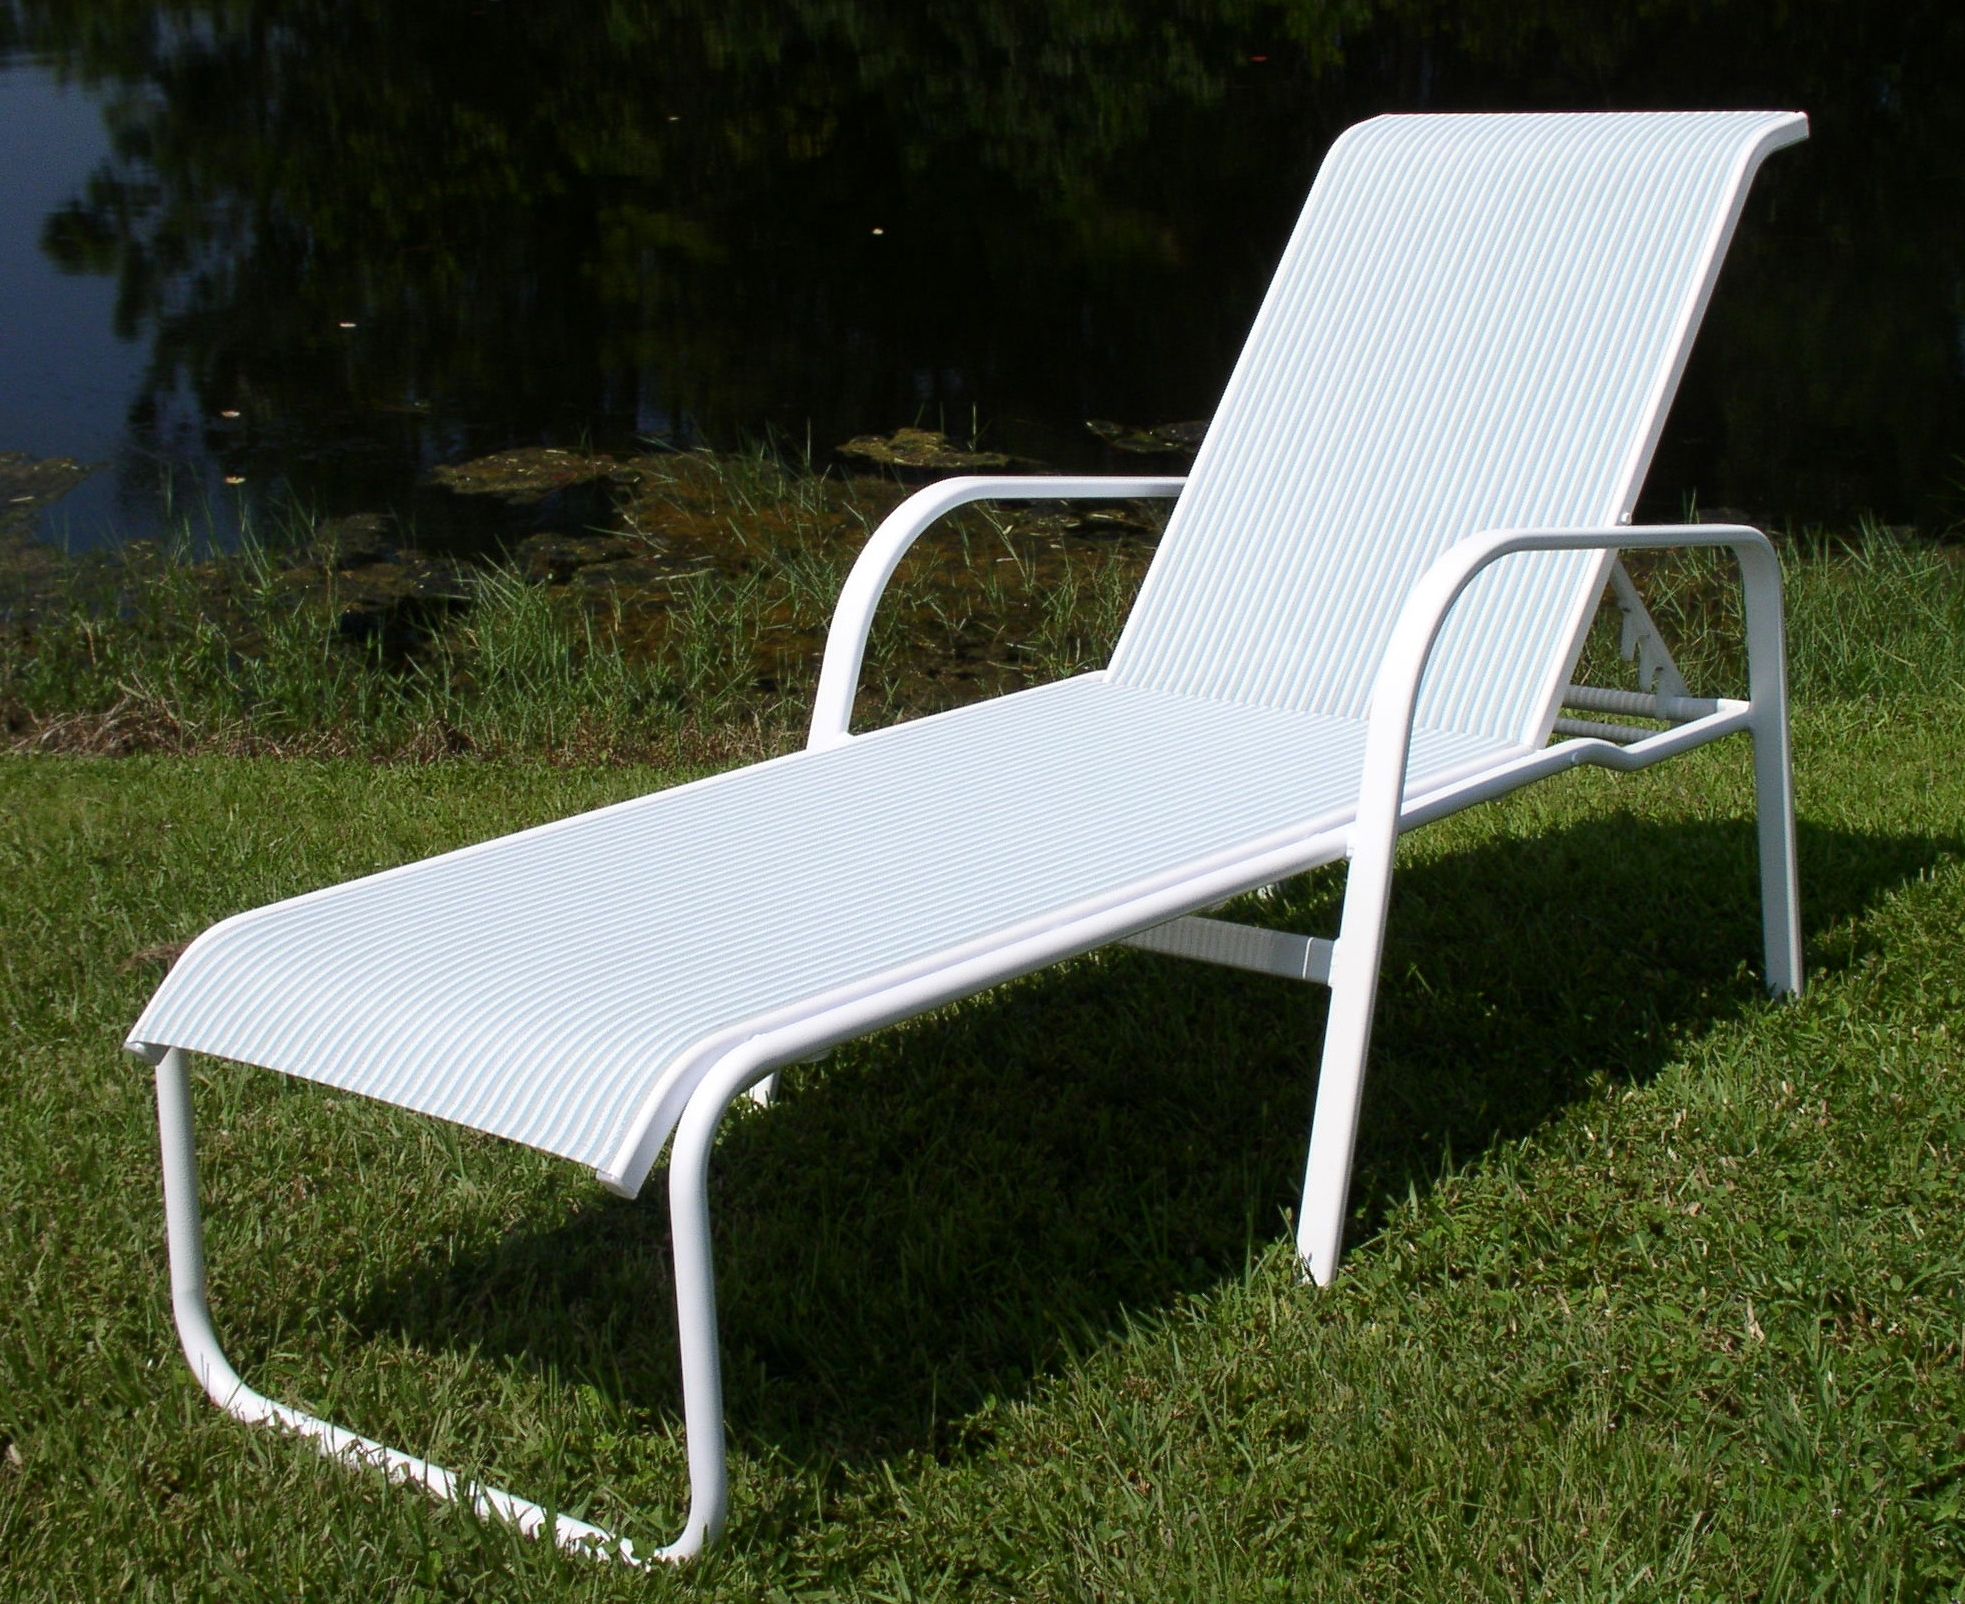 Lawn Chaises With Regard To Most Current Lawn Furniture Lounge Chairs • Lounge Chairs Ideas (View 5 of 15)